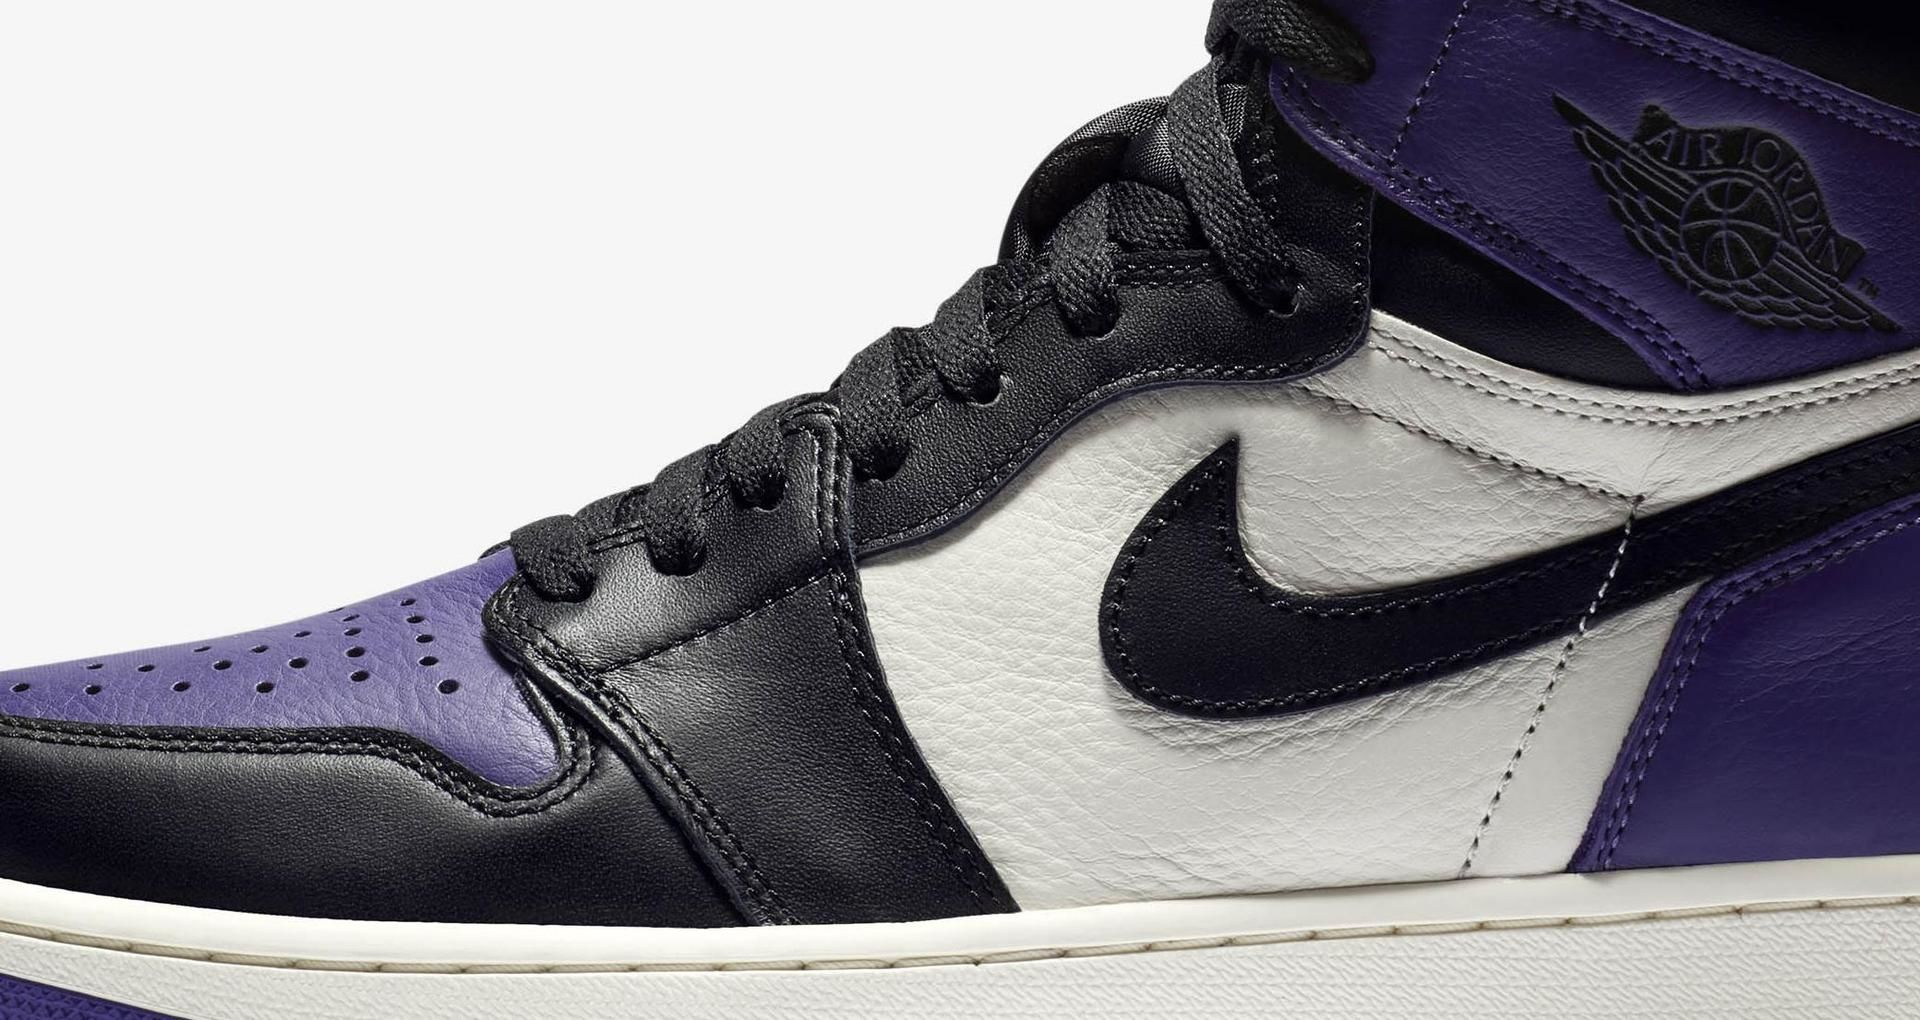 9edb31bb200 Air Jordan 1 Retro 'Court Purple' Release Date. Nike⁠+ SNKRS